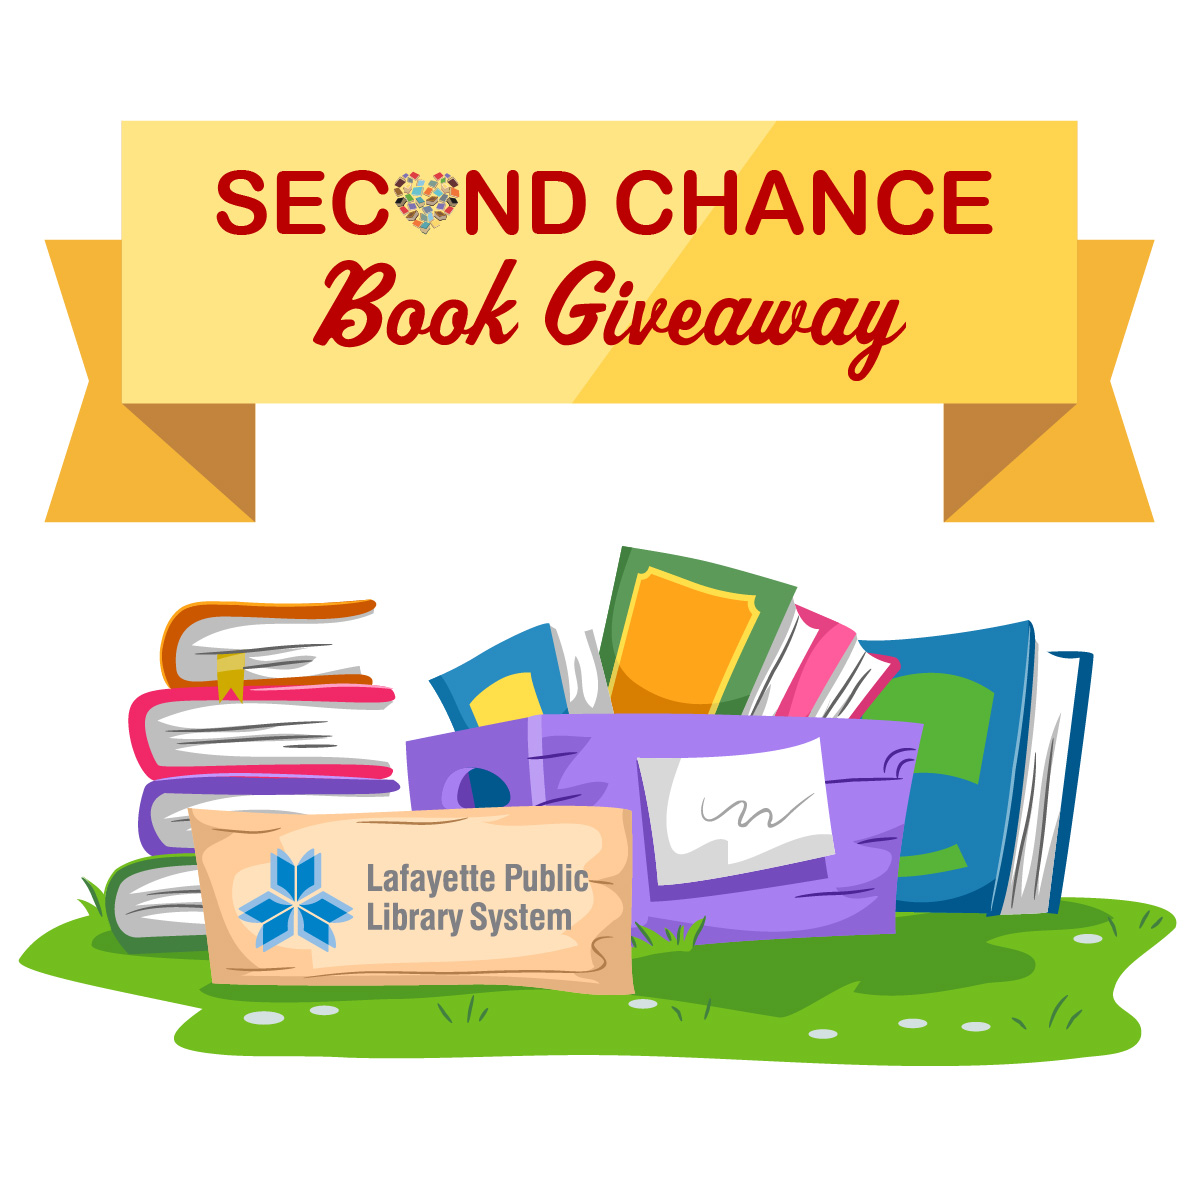 Second Chance Book Giveaway: Main Library